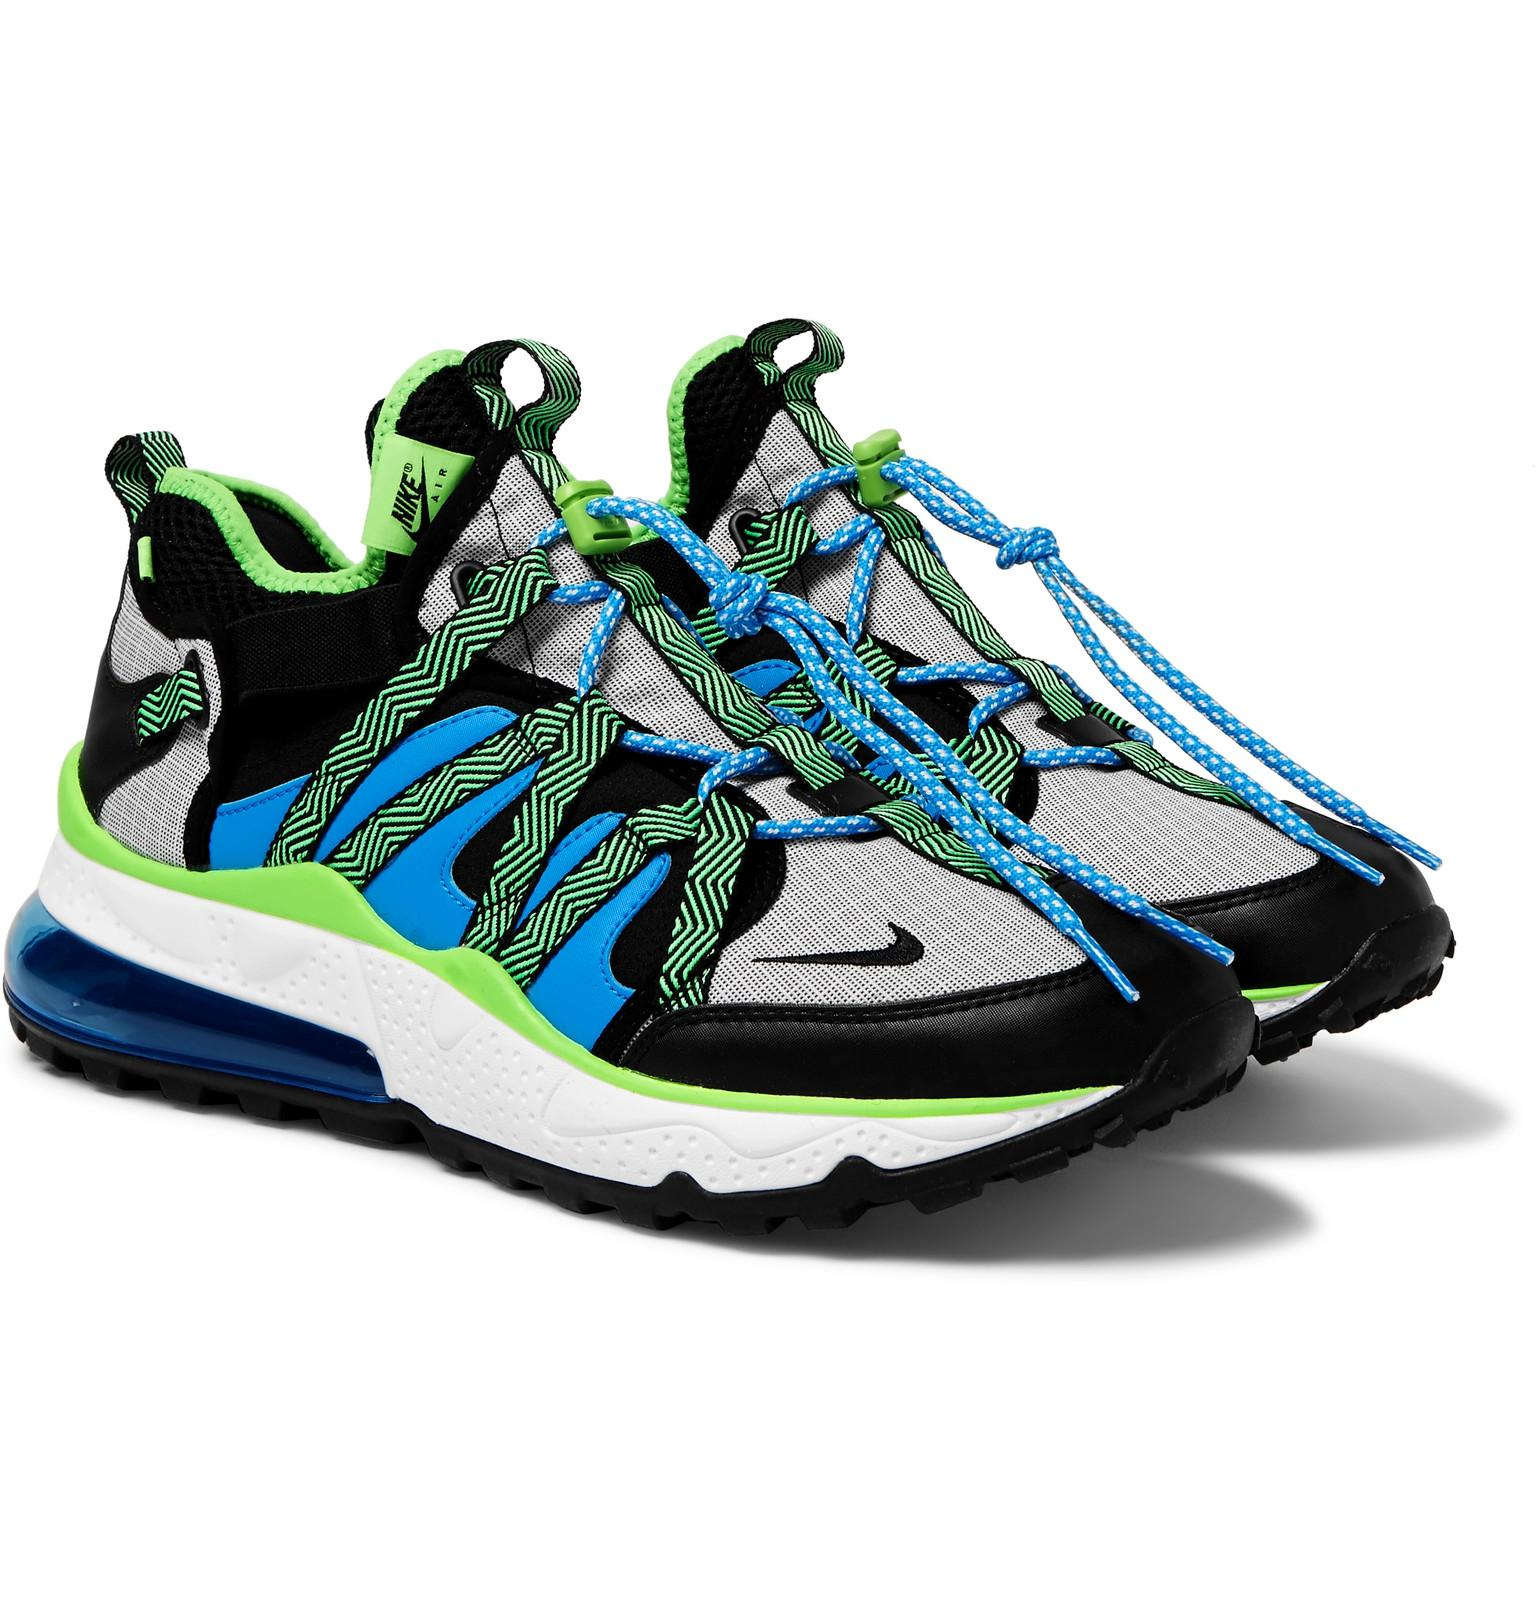 9b941e53245 Nike Air Max 270 Bowfin Mesh And Nylon Sneakers in Blue for Men ...